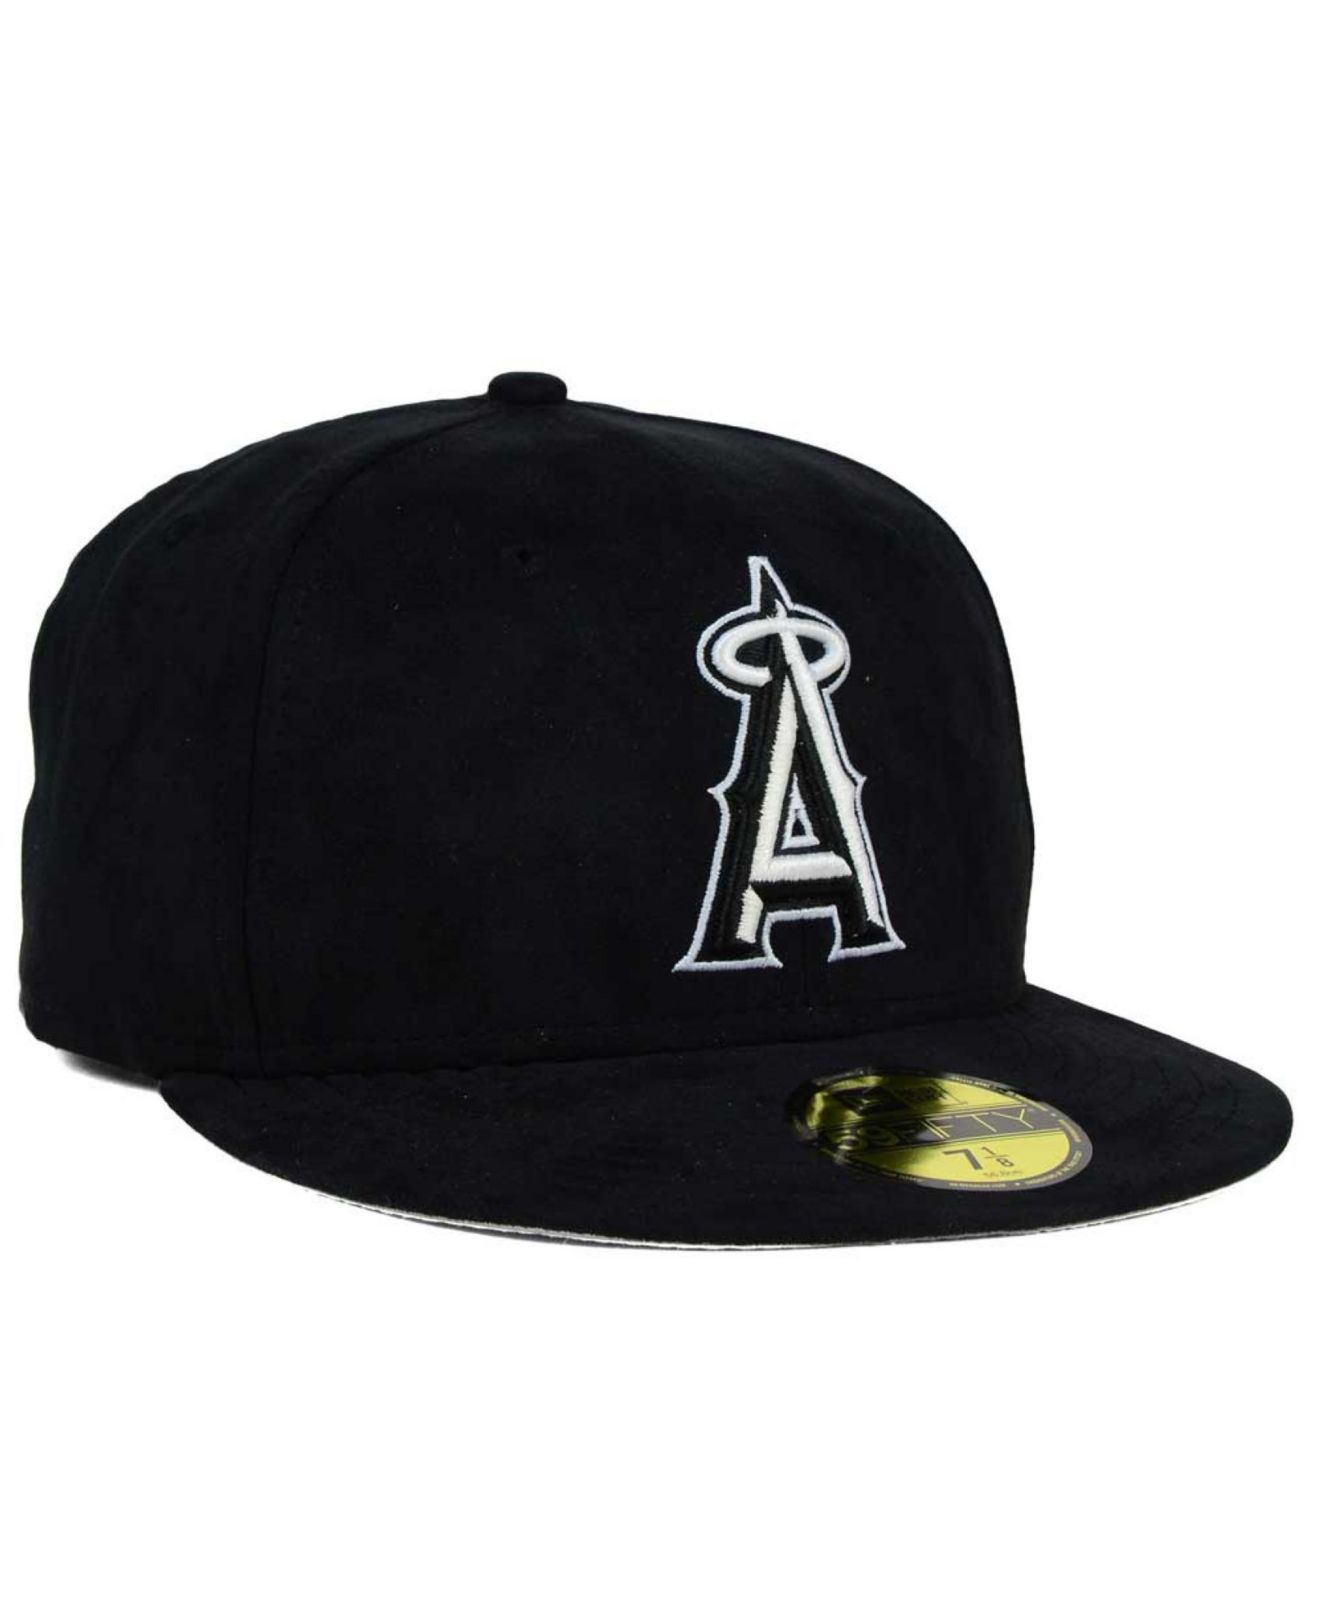 best service e76f7 d31a7 ... australia lyst ktz los angeles angels of anaheim suede out 59fifty cap  in 3026c 3a512